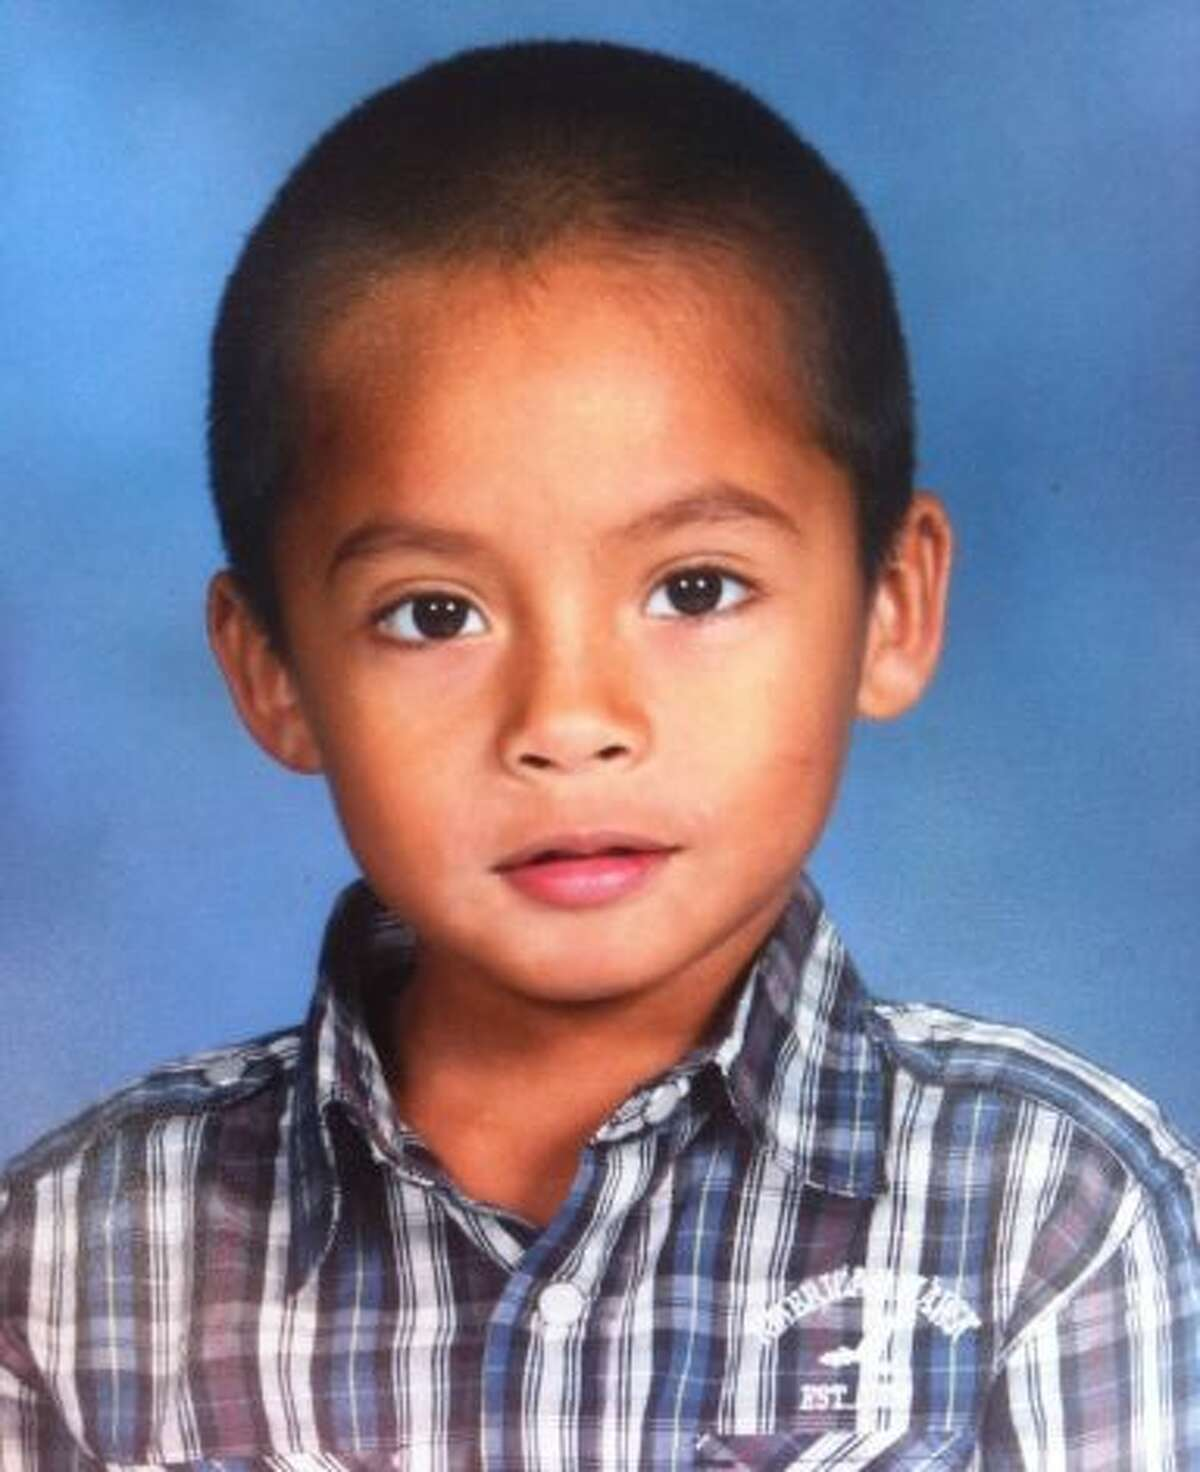 Rudy Alejos, 6, is seen in an undated courtesy photo provided by his family.